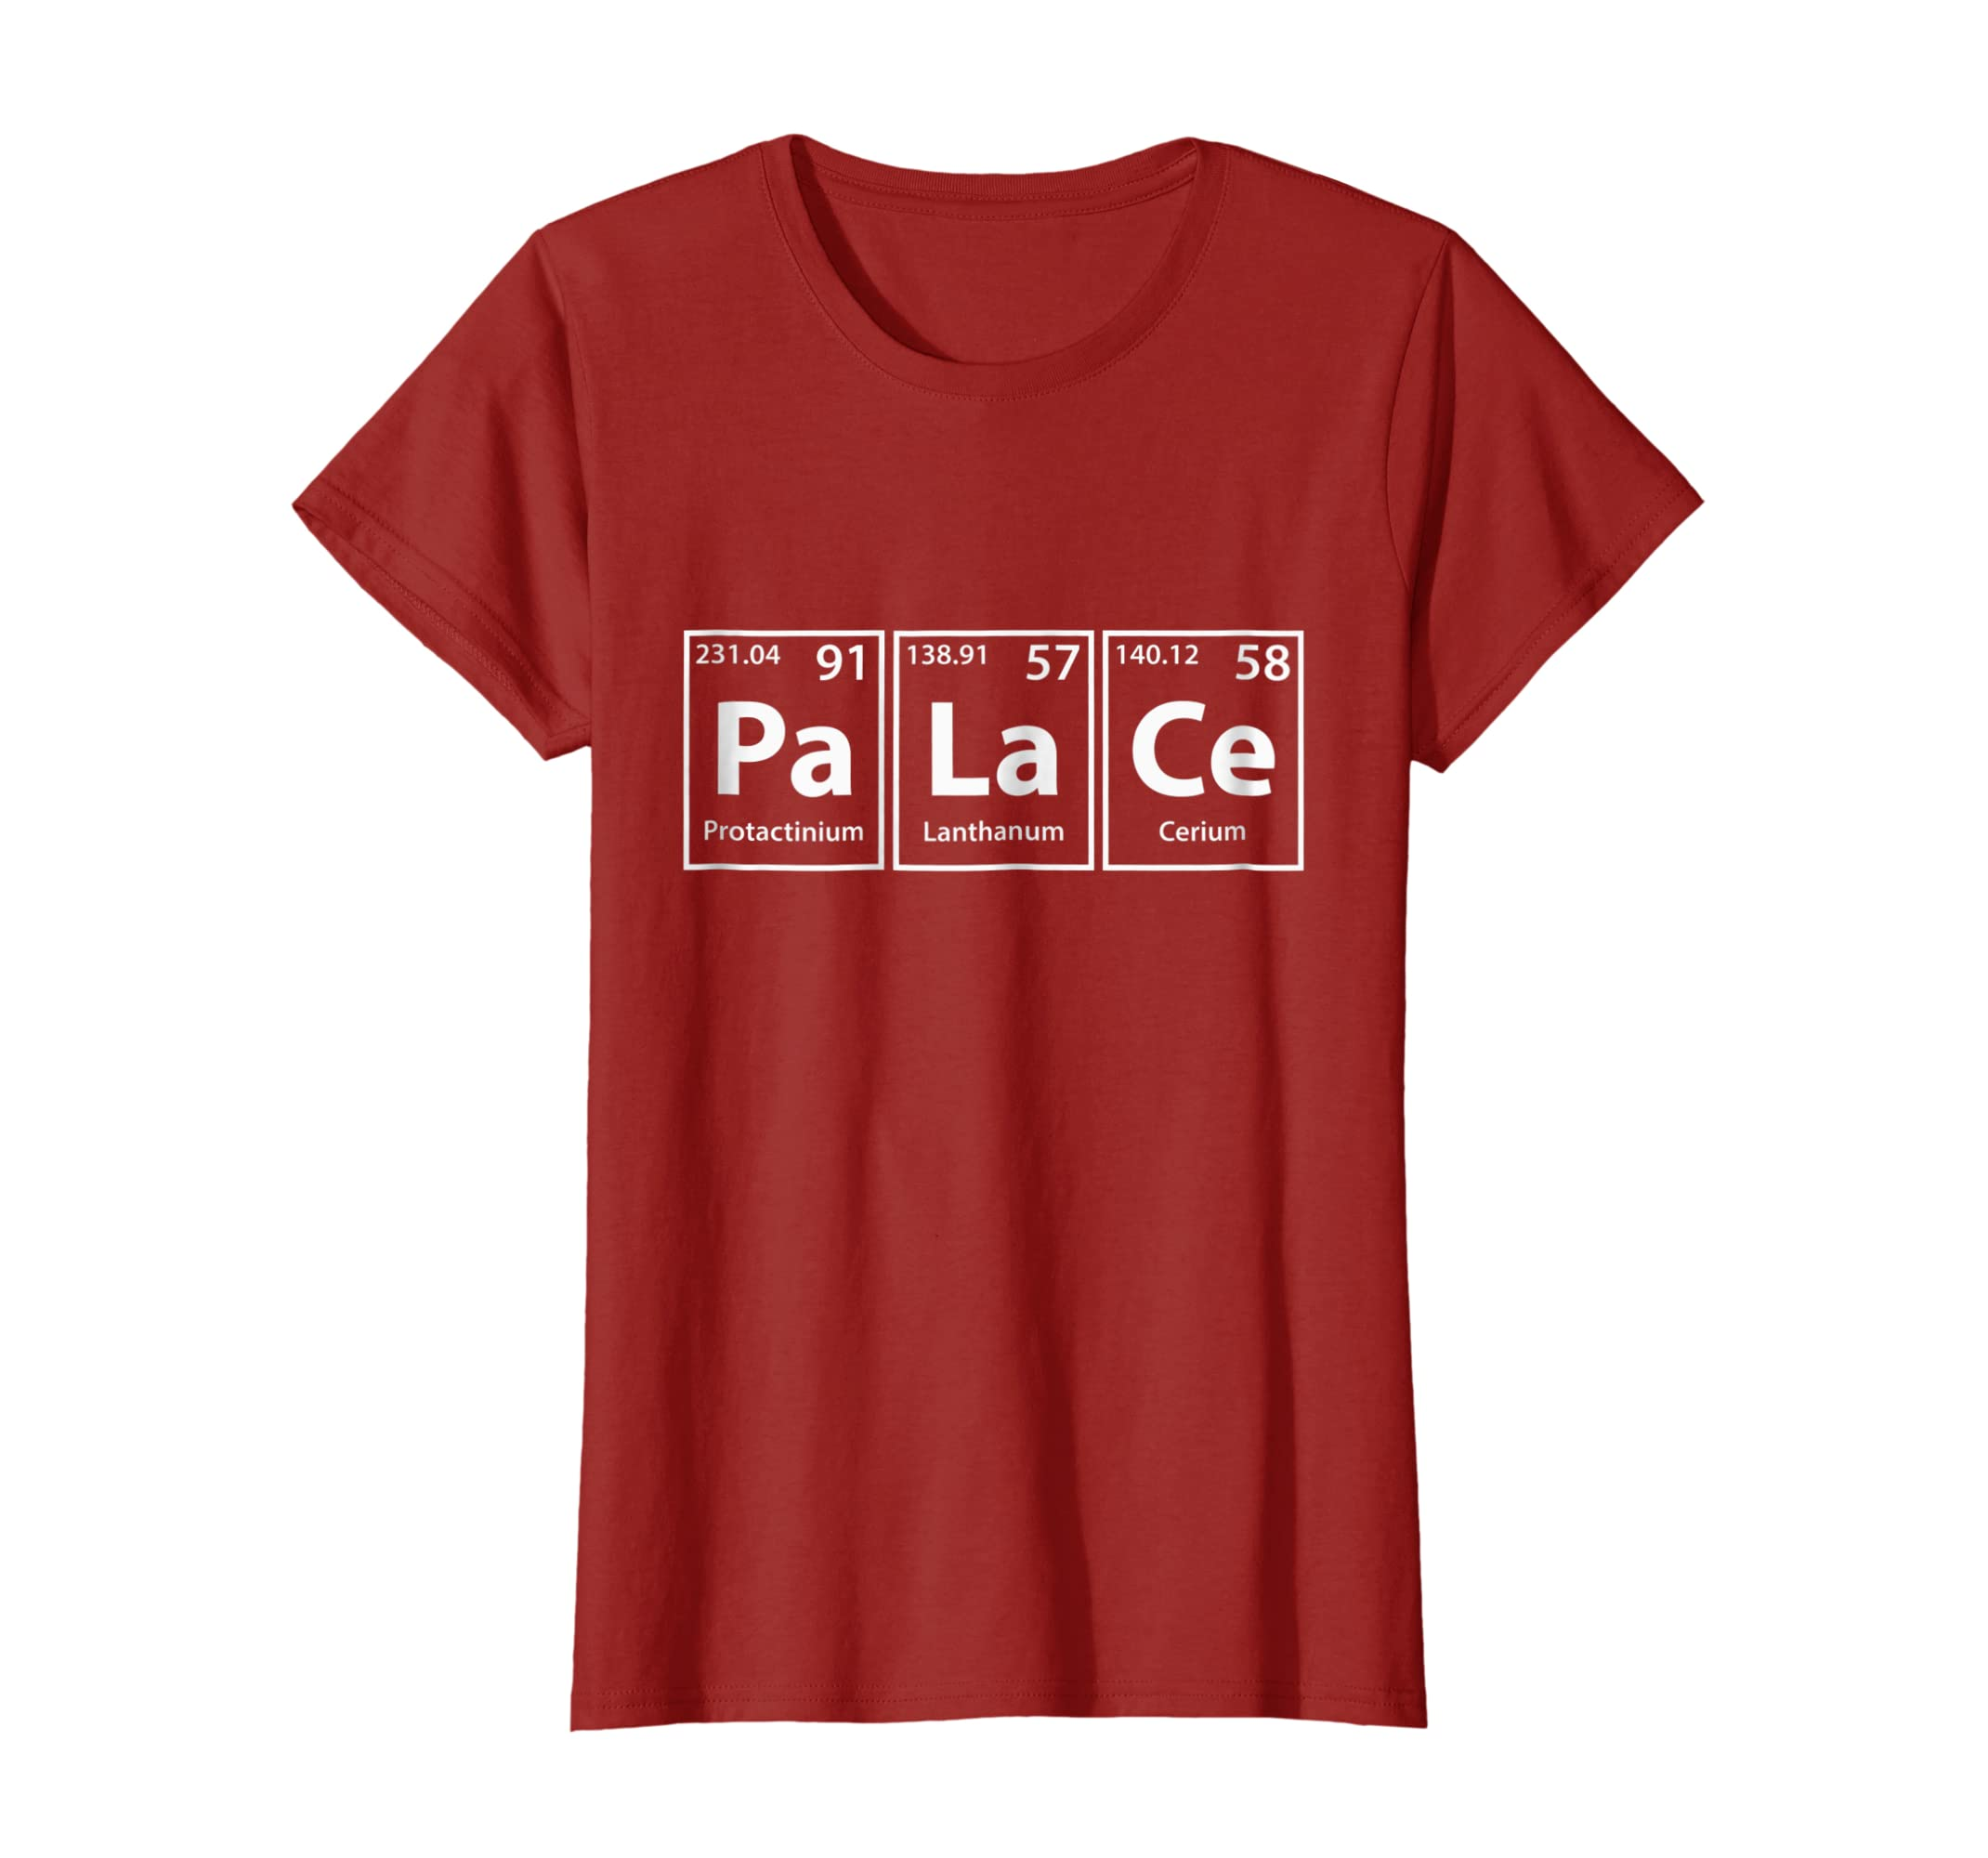 Excellent Amazon Com Palace Pa La Ce Periodic Table Elements Shirt Download Free Architecture Designs Intelgarnamadebymaigaardcom